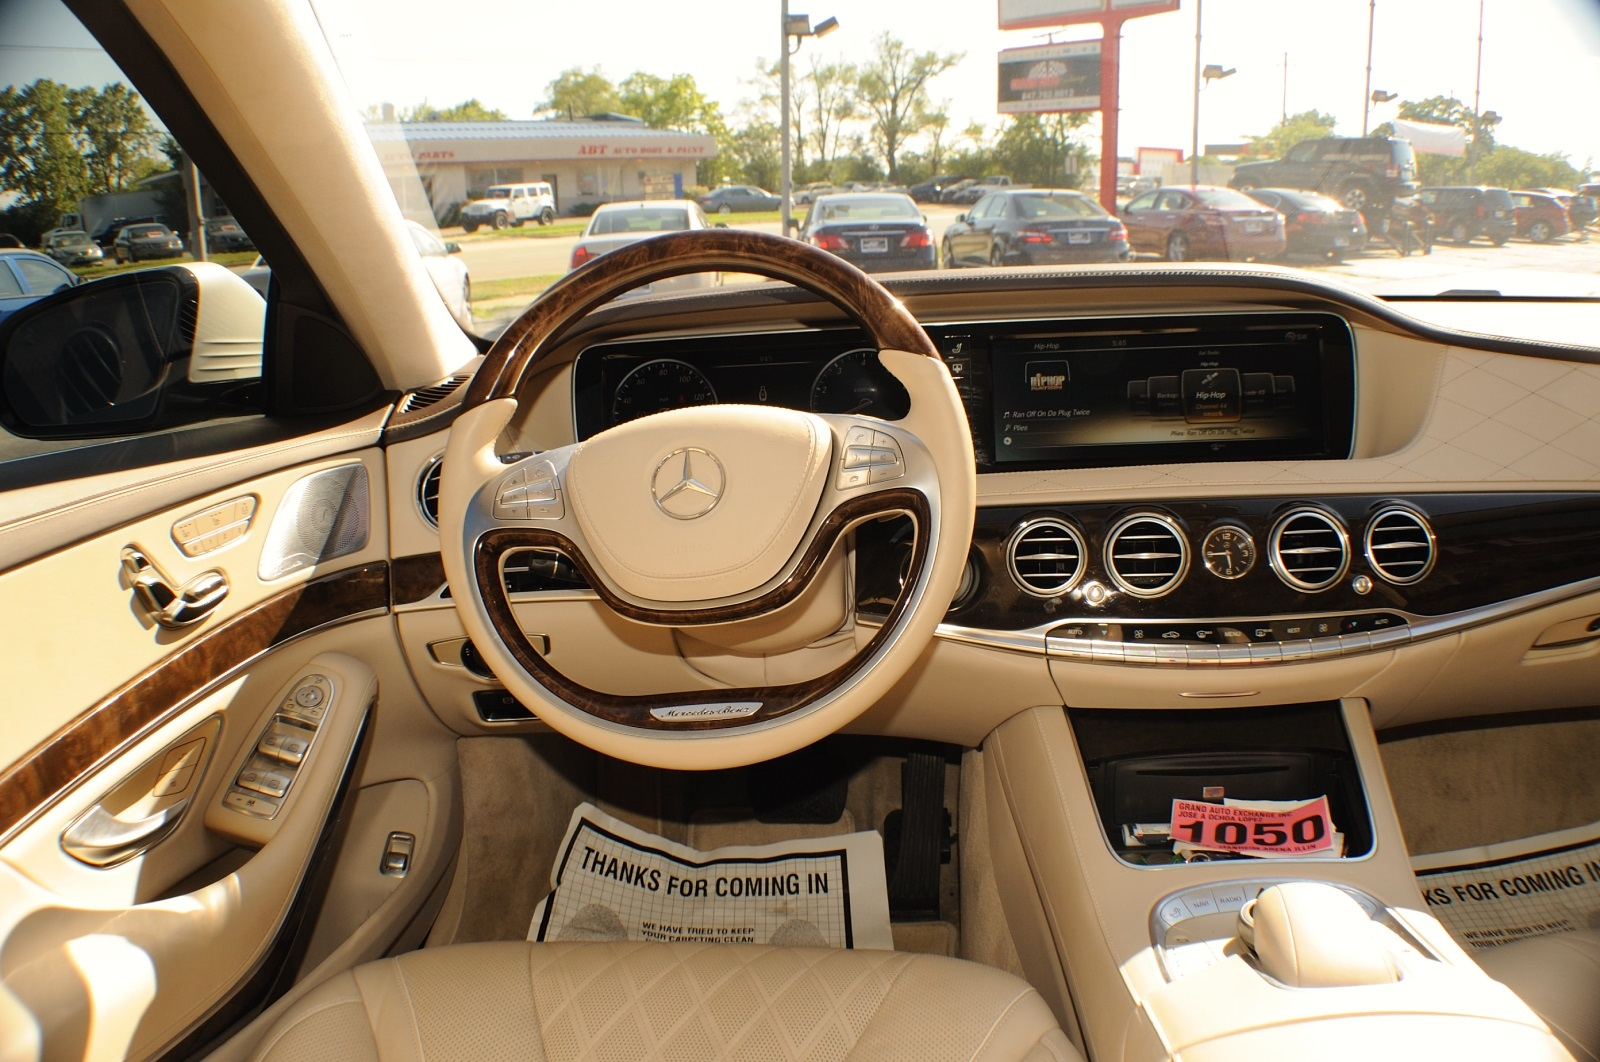 2014 Mercedes Benz S550 4Matic AWD Turbo White Sedan used car Sale Green Oaks Hainesville Hawthorne Woods